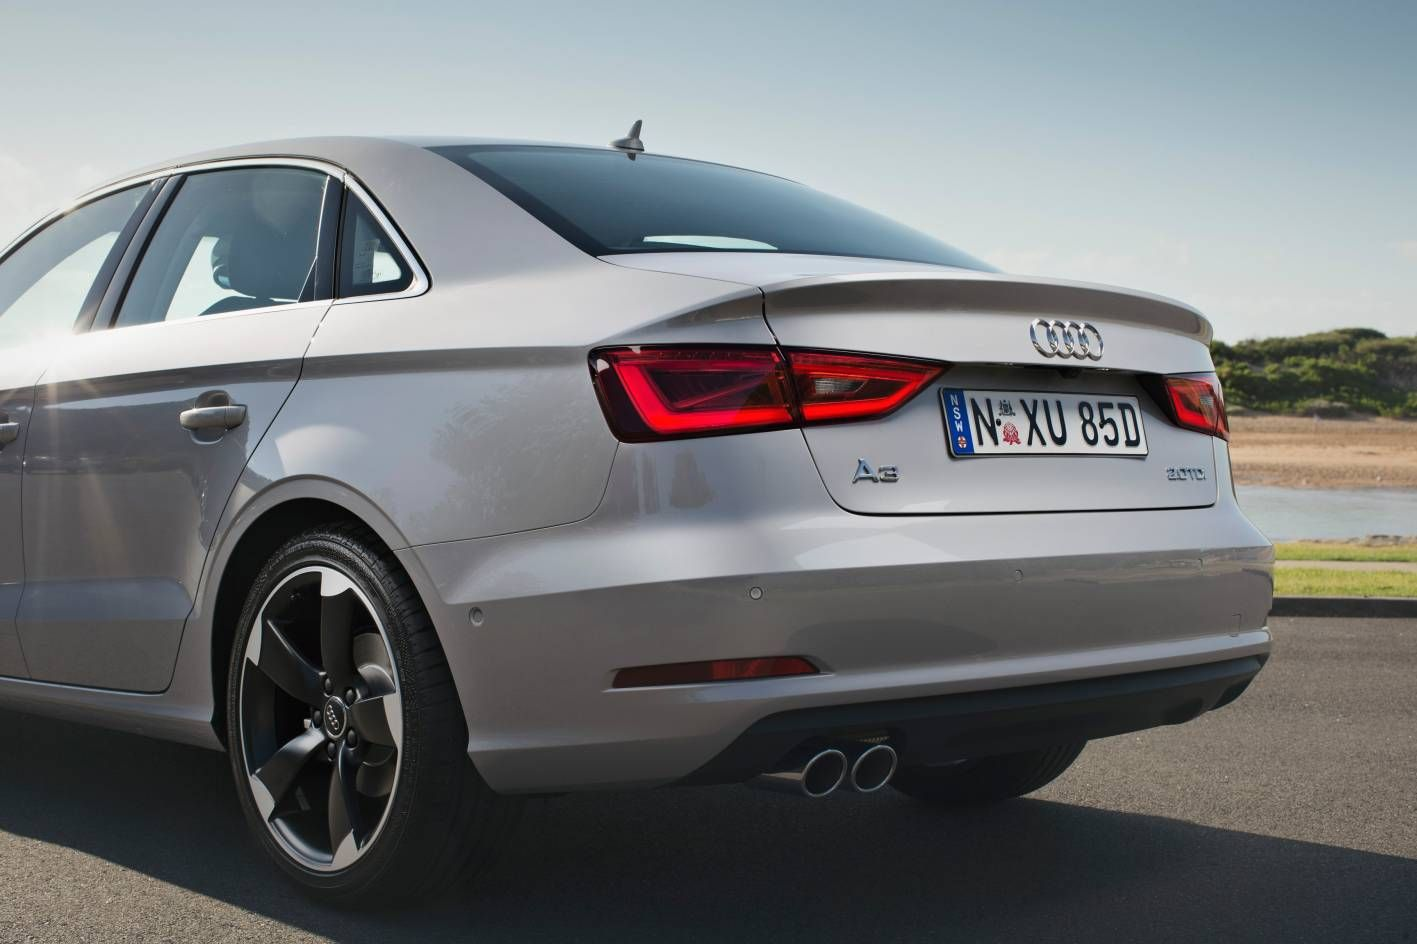 New audi a3 sedan details hd - First Official Australian Images Of The All New Audi A3 Sedan Have Been Released It